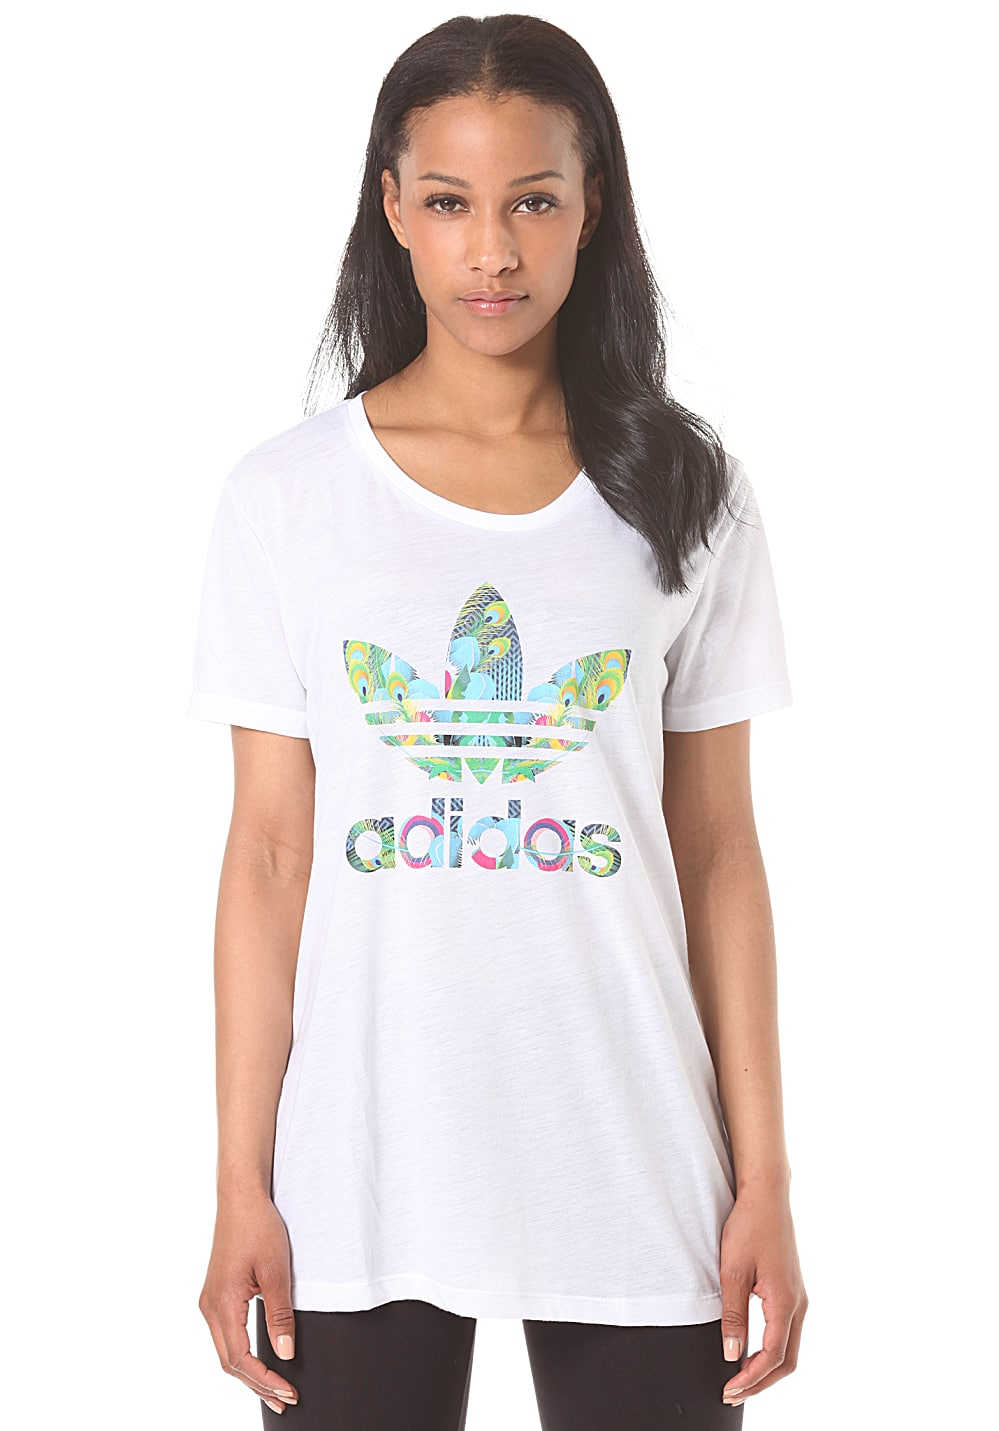 adidas bird logo t shirt f r damen wei planet sports. Black Bedroom Furniture Sets. Home Design Ideas